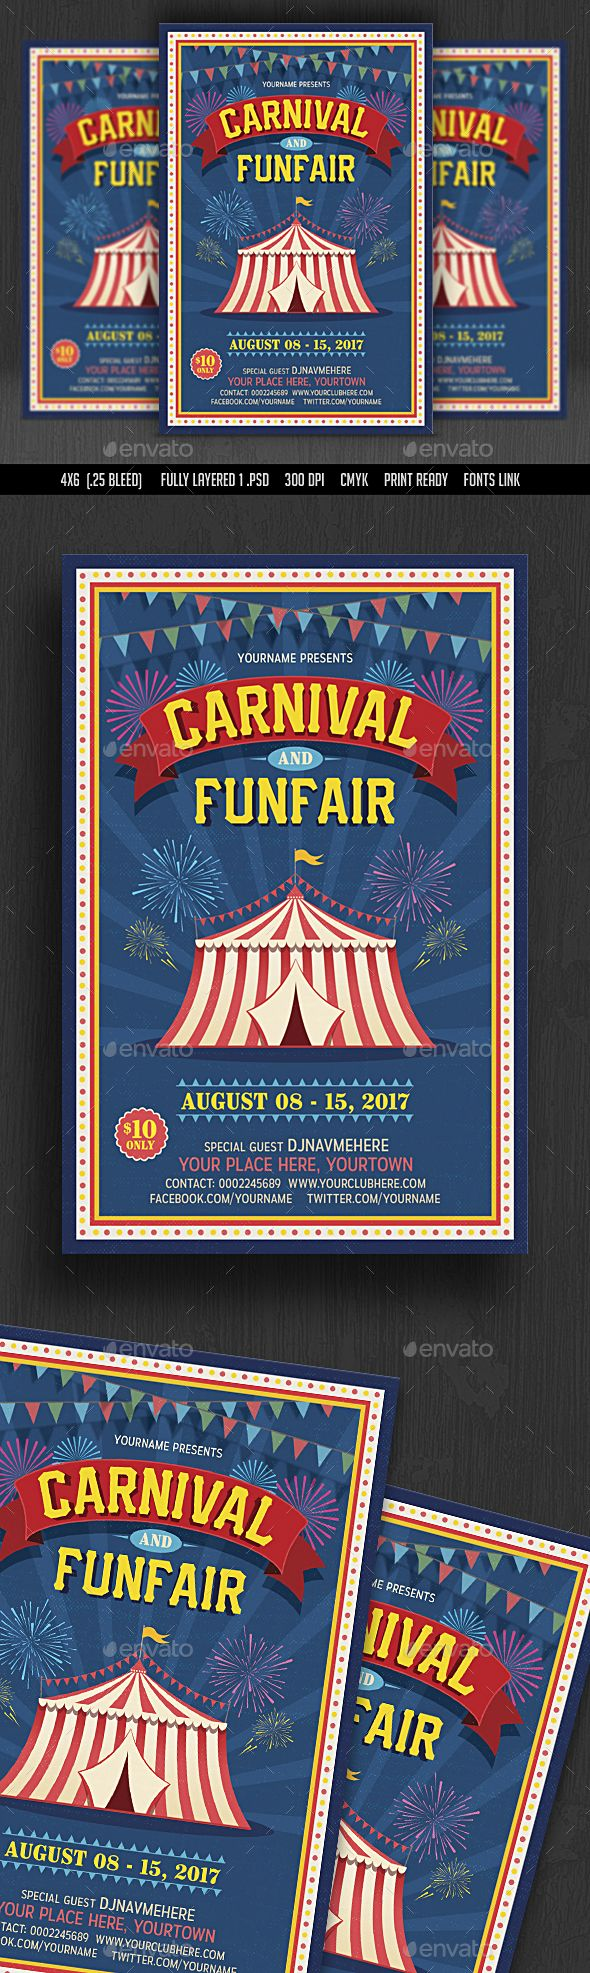 Carnival Fun Fair Flyer Template Psd Download Here Http